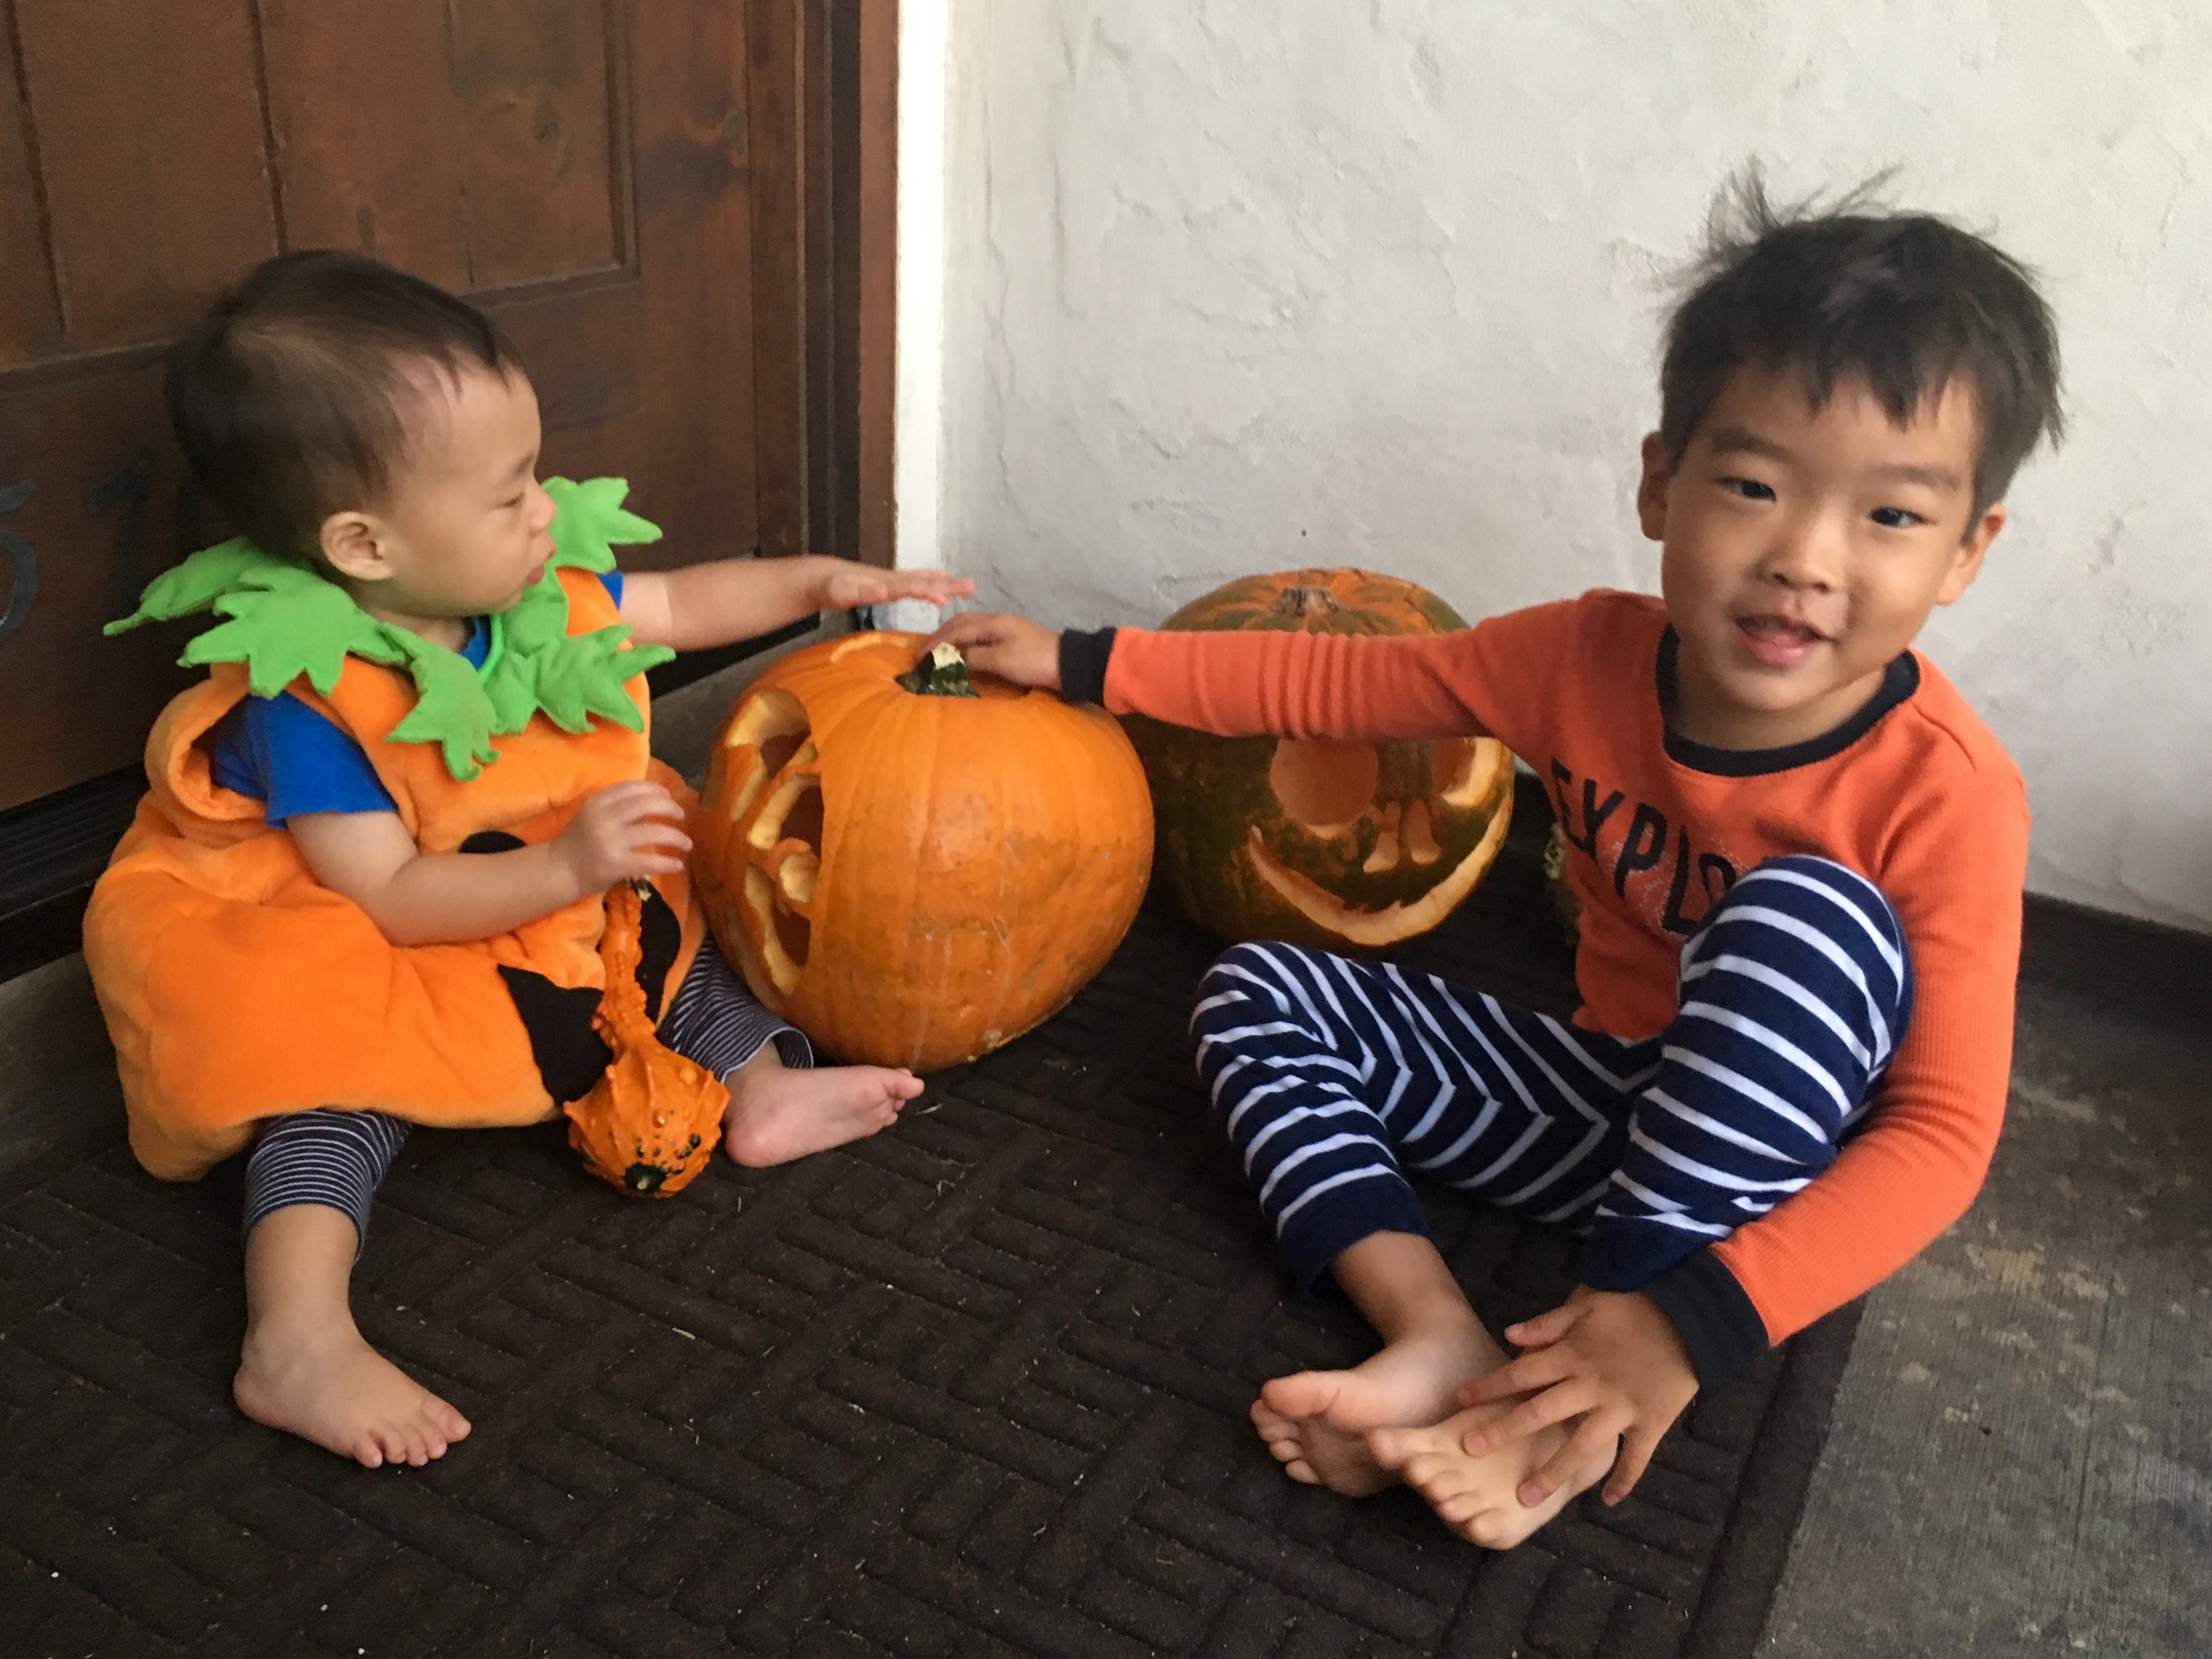 "<div class=""meta image-caption""><div class=""origin-logo origin-image ktrk""><span>KTRK</span></div><span class=""caption-text"">ABC13's Miya Shay and her kiddos with their pumpkin carving creations</span></div>"